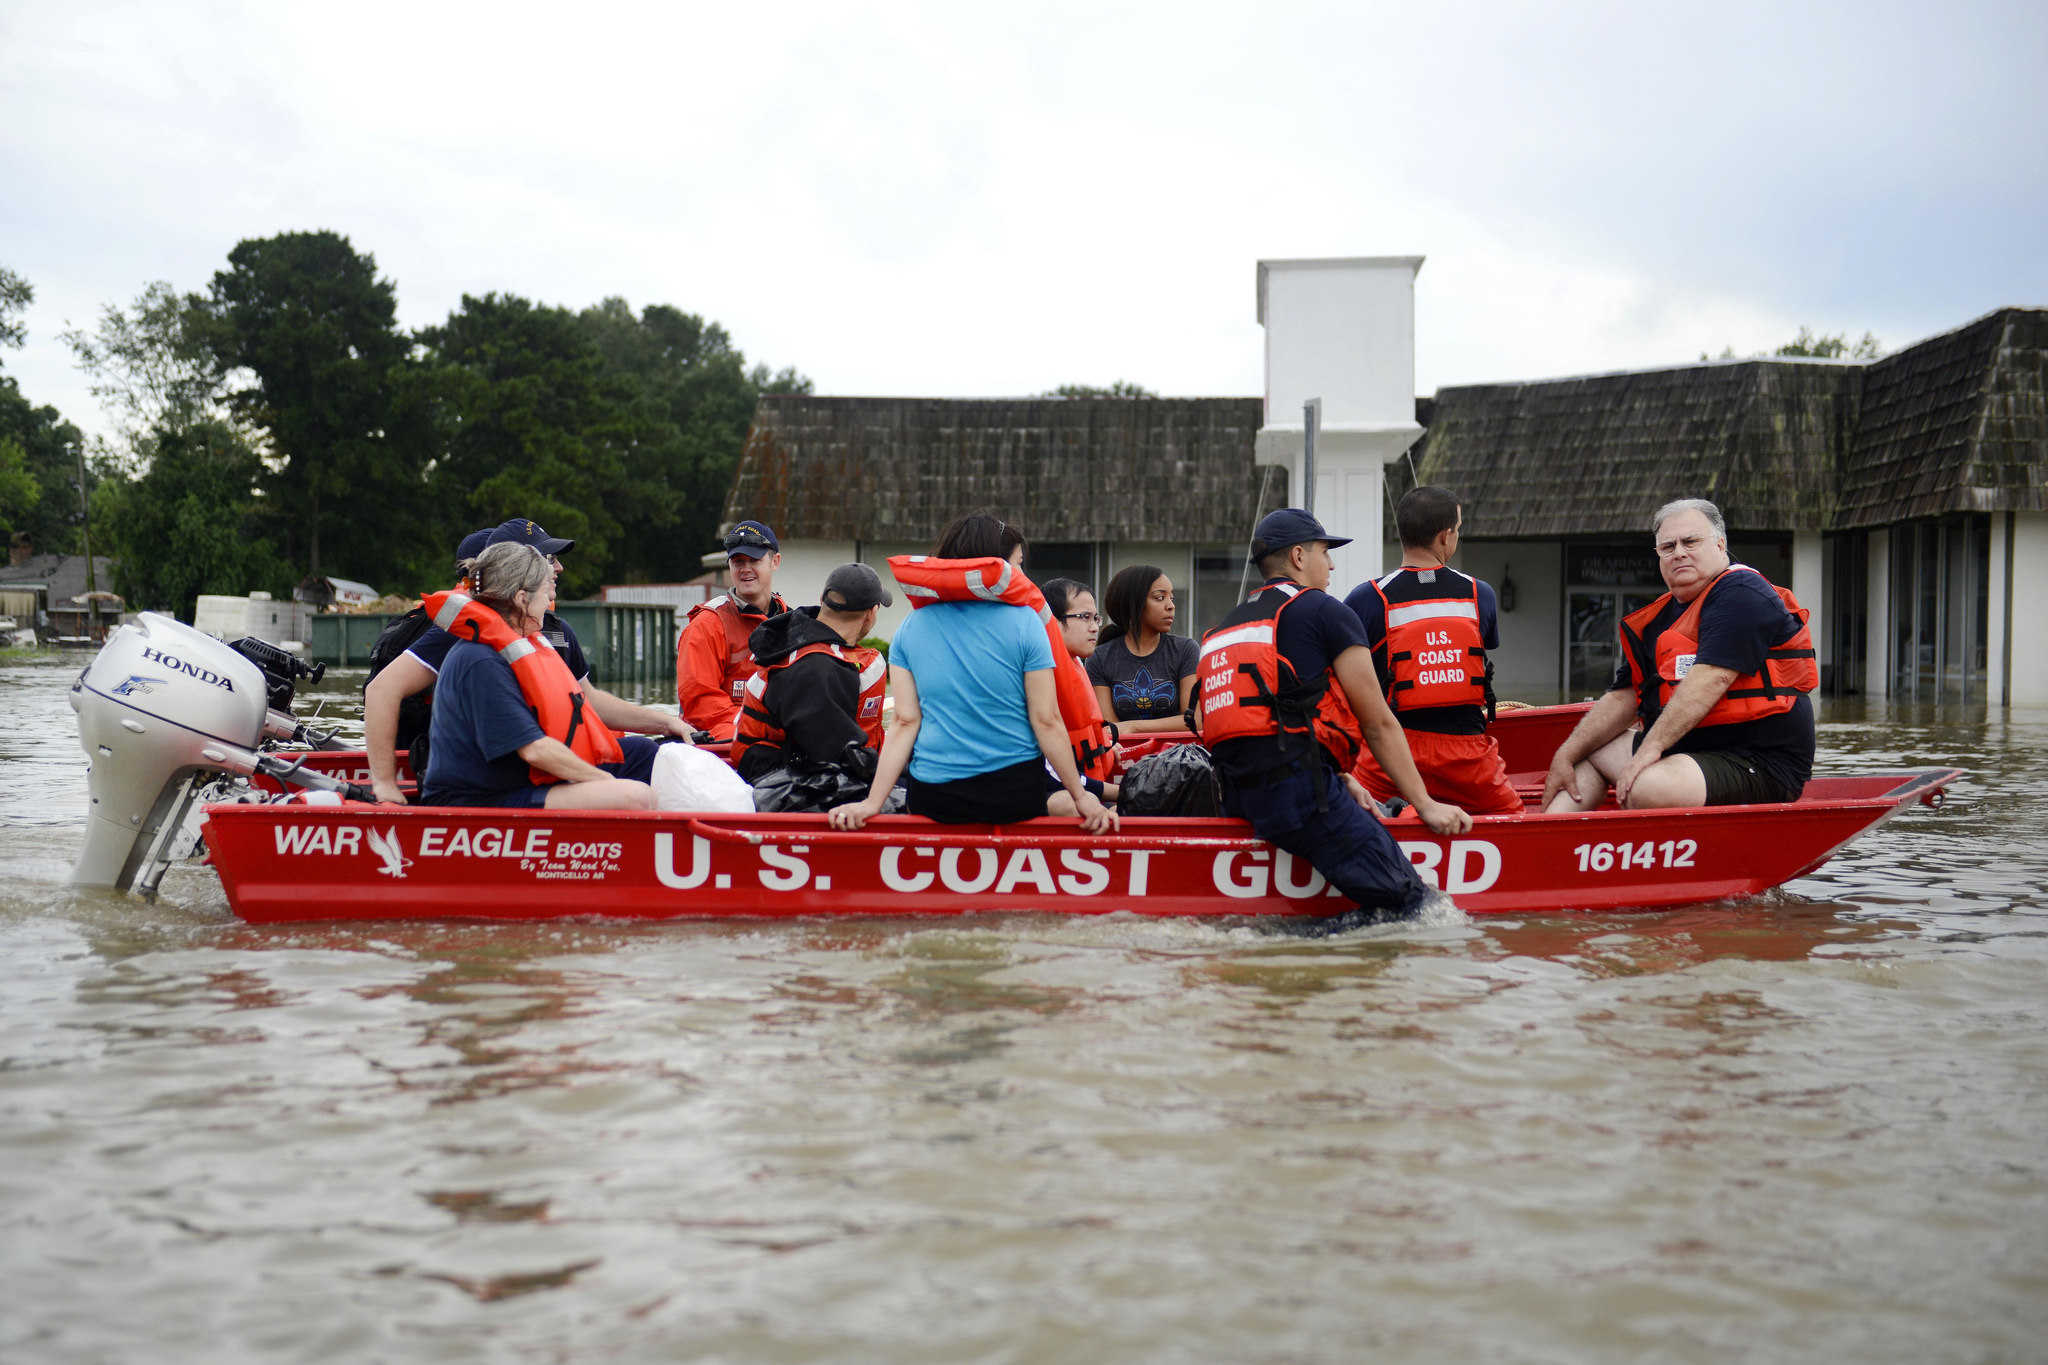 Coast Guardsmen rescue stranded residents from high water during severe flooding around Baton Rouge, Louisiana.